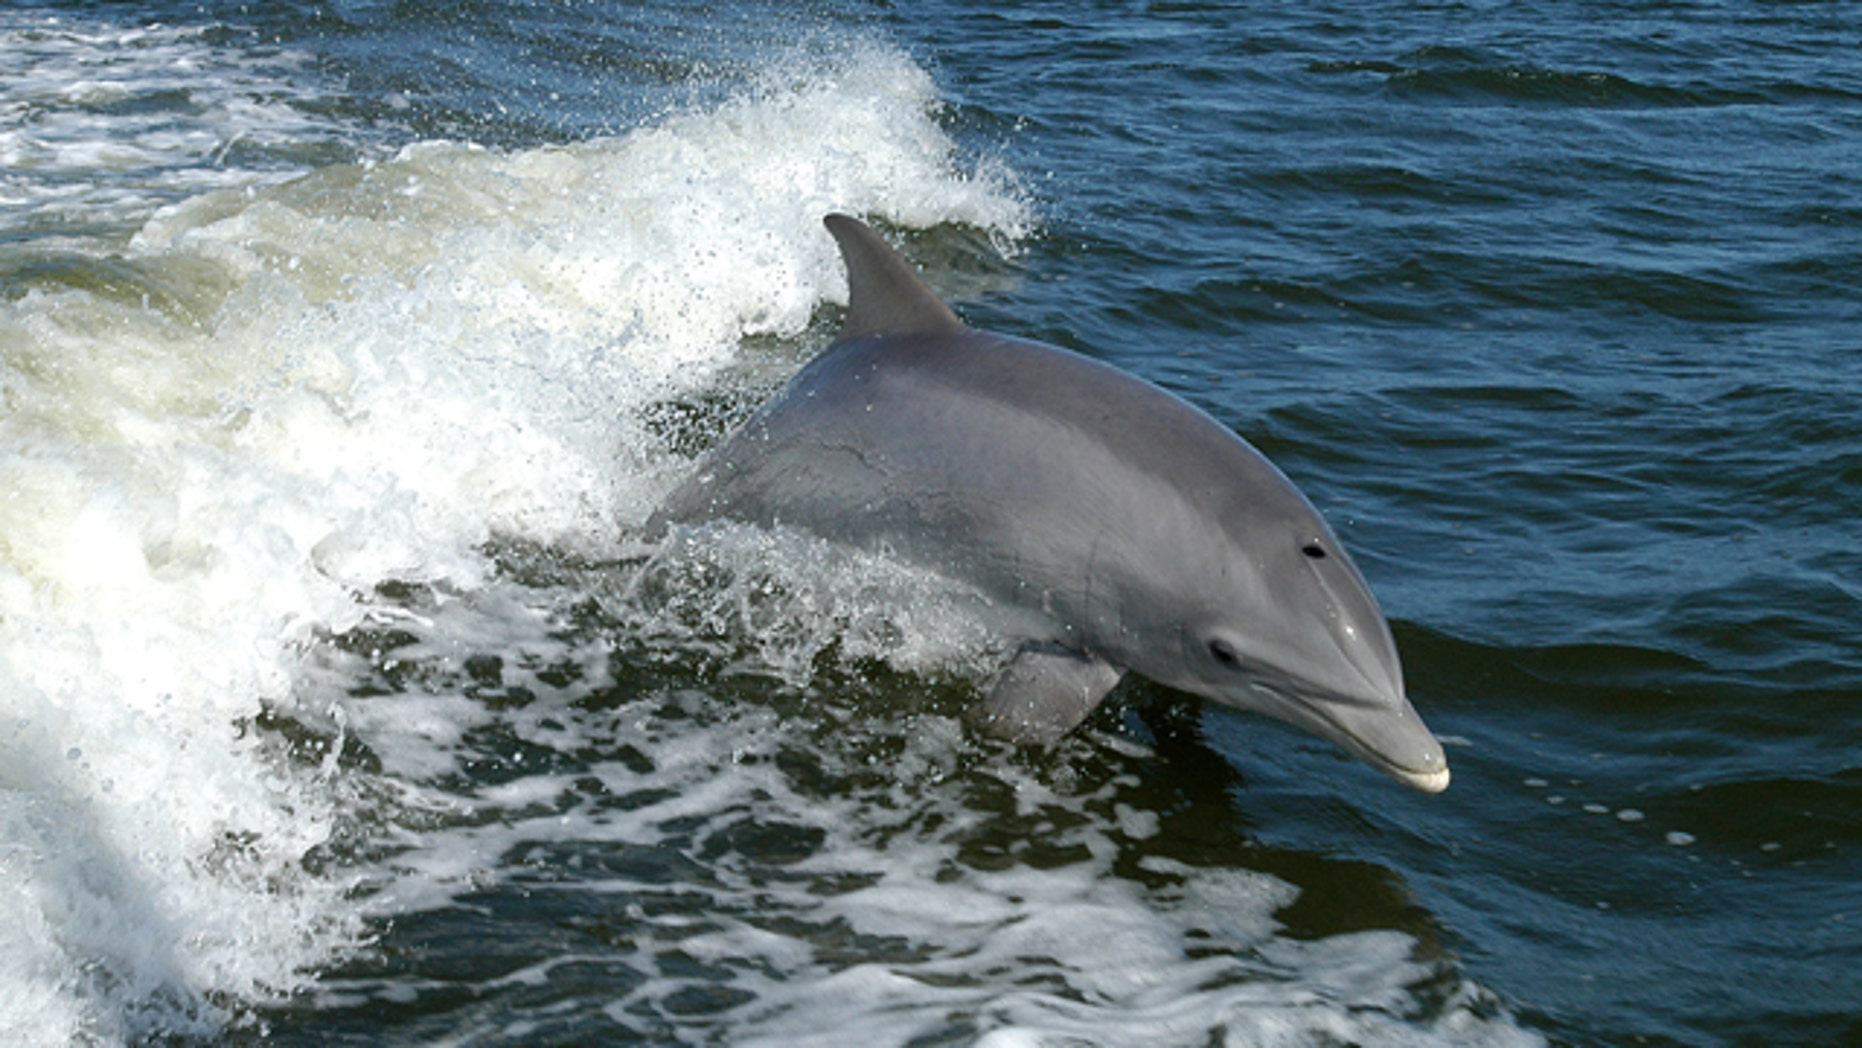 A bottlenose dolphin leaps near a research boat.